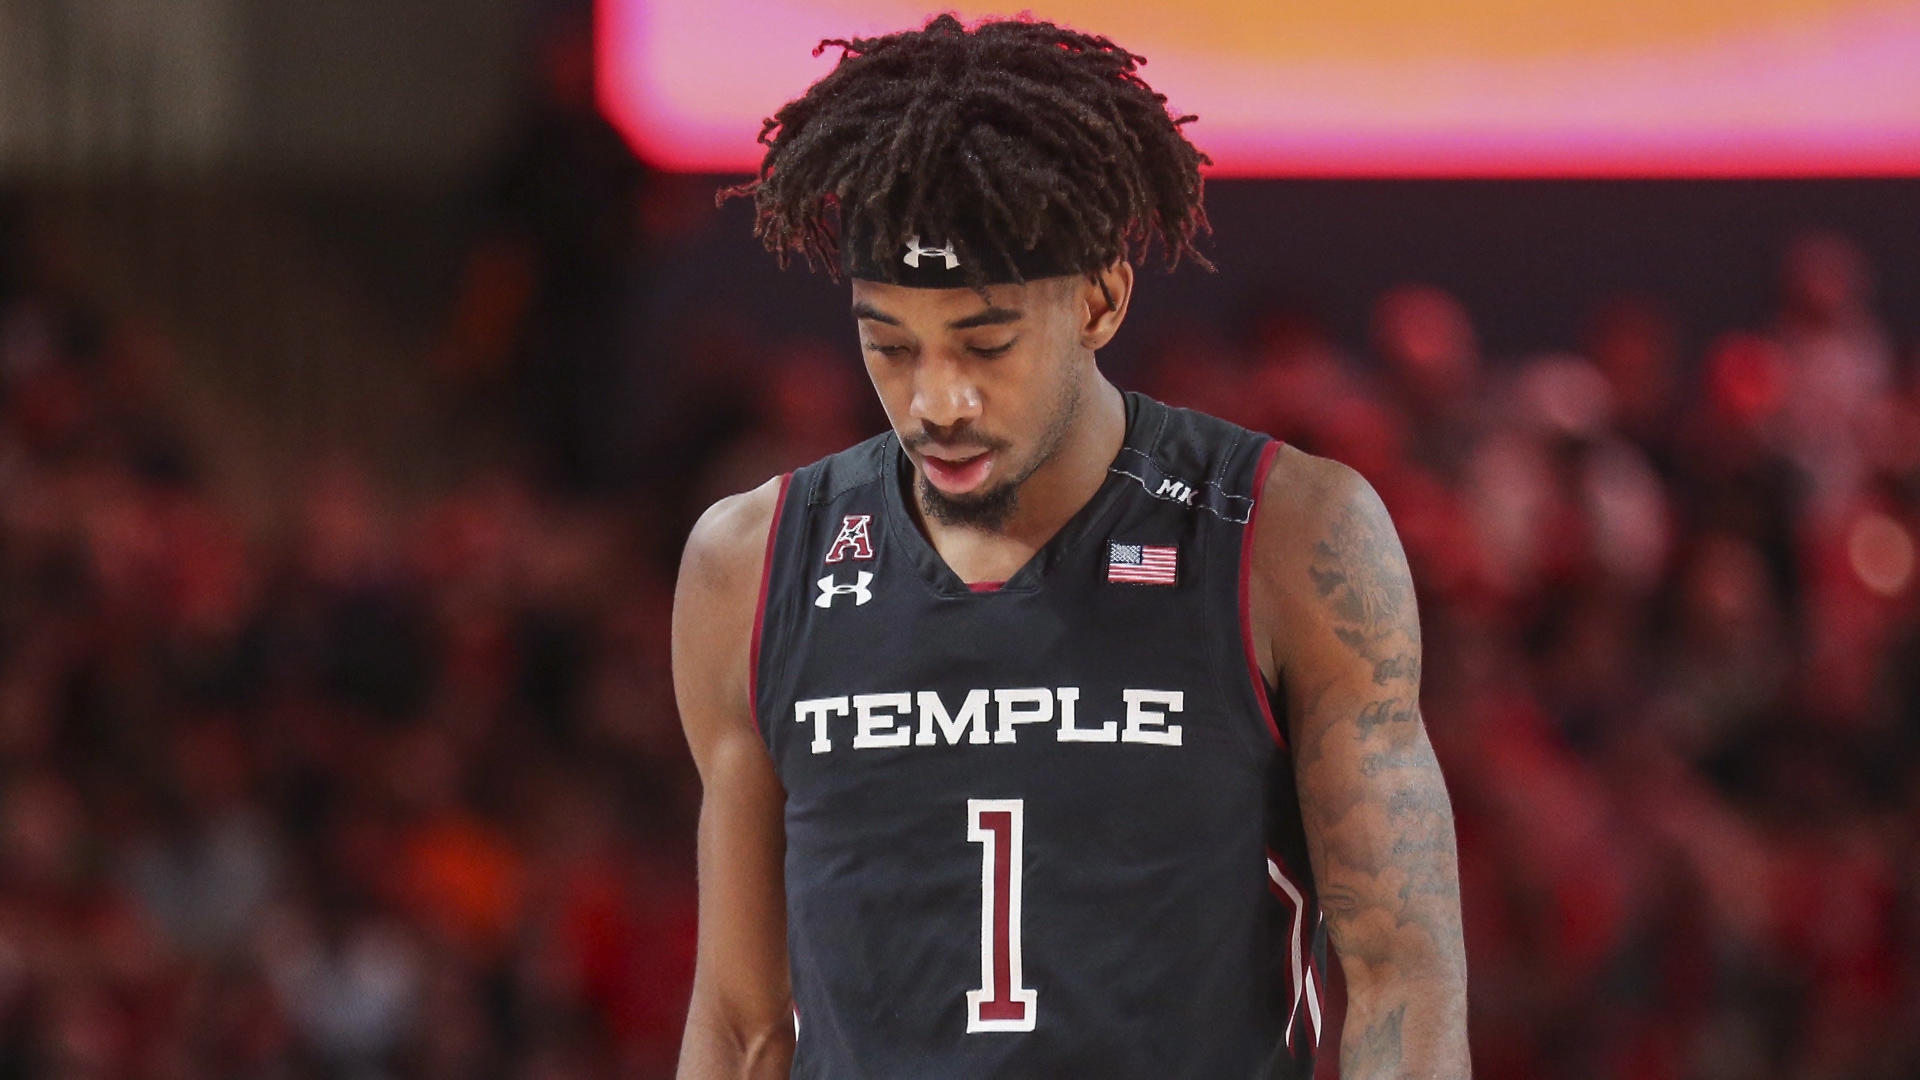 Bracketology Trust Builder: Arizona State hurt by lack of consistency; Temple needs another quality win